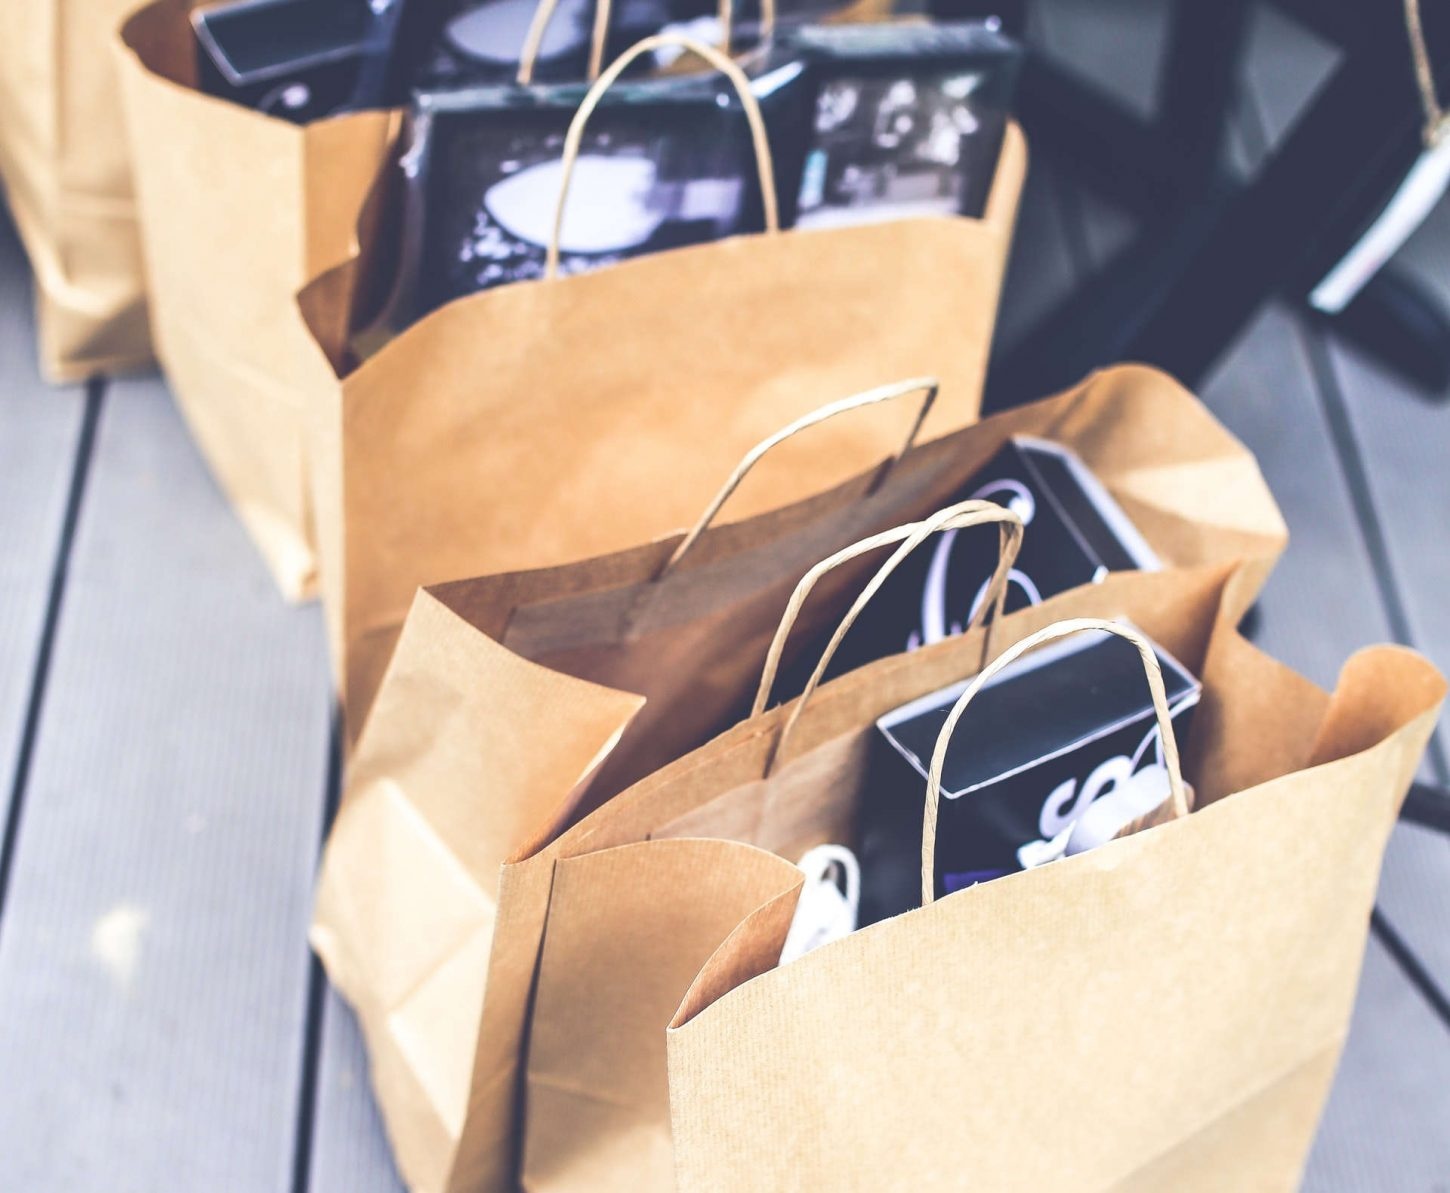 7 Of The Best Ways to Sell Stuff Online